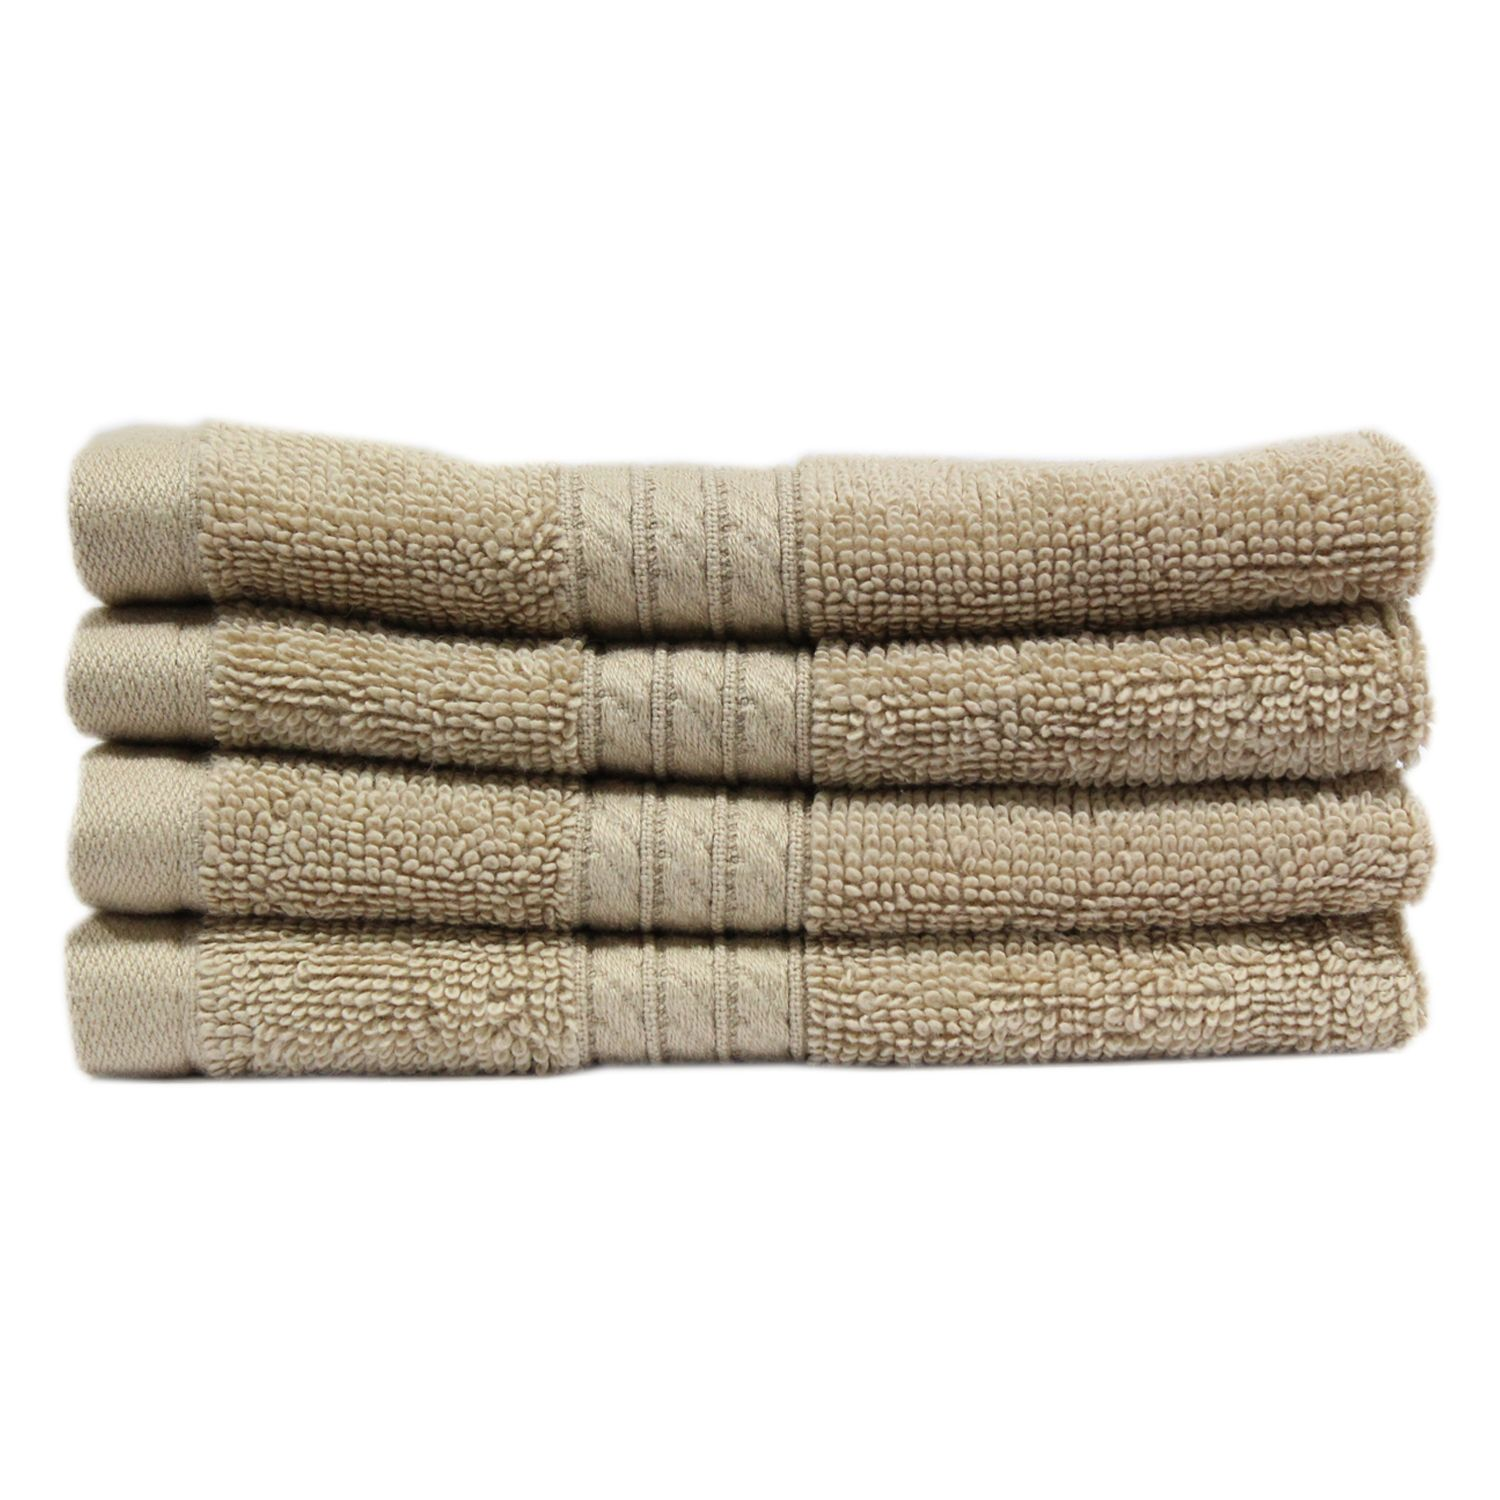 "100% Cotton Luxury Washcloth, 13"" x 13"" - 2 pk. - Linen"